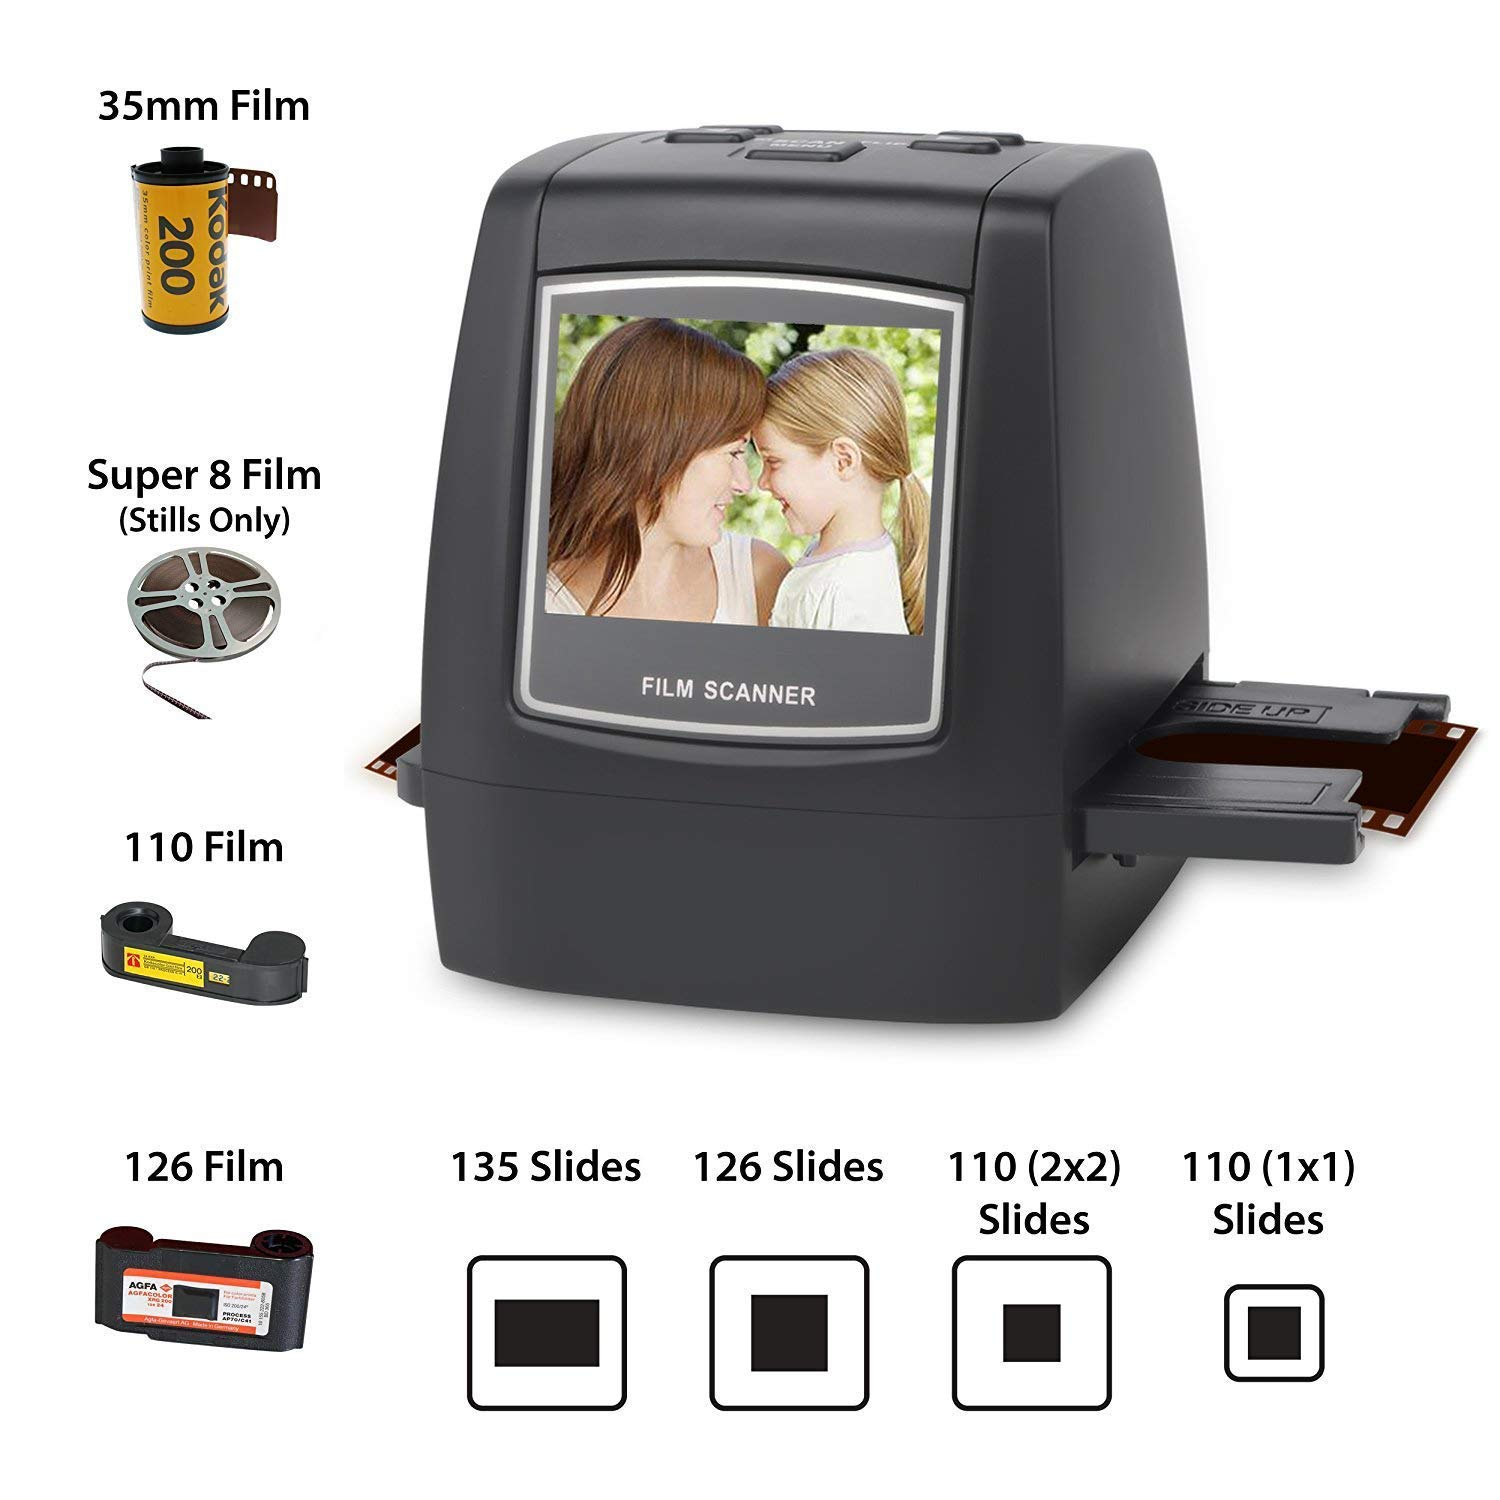 DIGITNOW Film Scanner with 22MP Converts 126KPK/135/110/Super 8 Films, Slides, Negatives All in One into Digital Photos,2.4'' LCD Screen, Impressive 128MB Built-in Memory